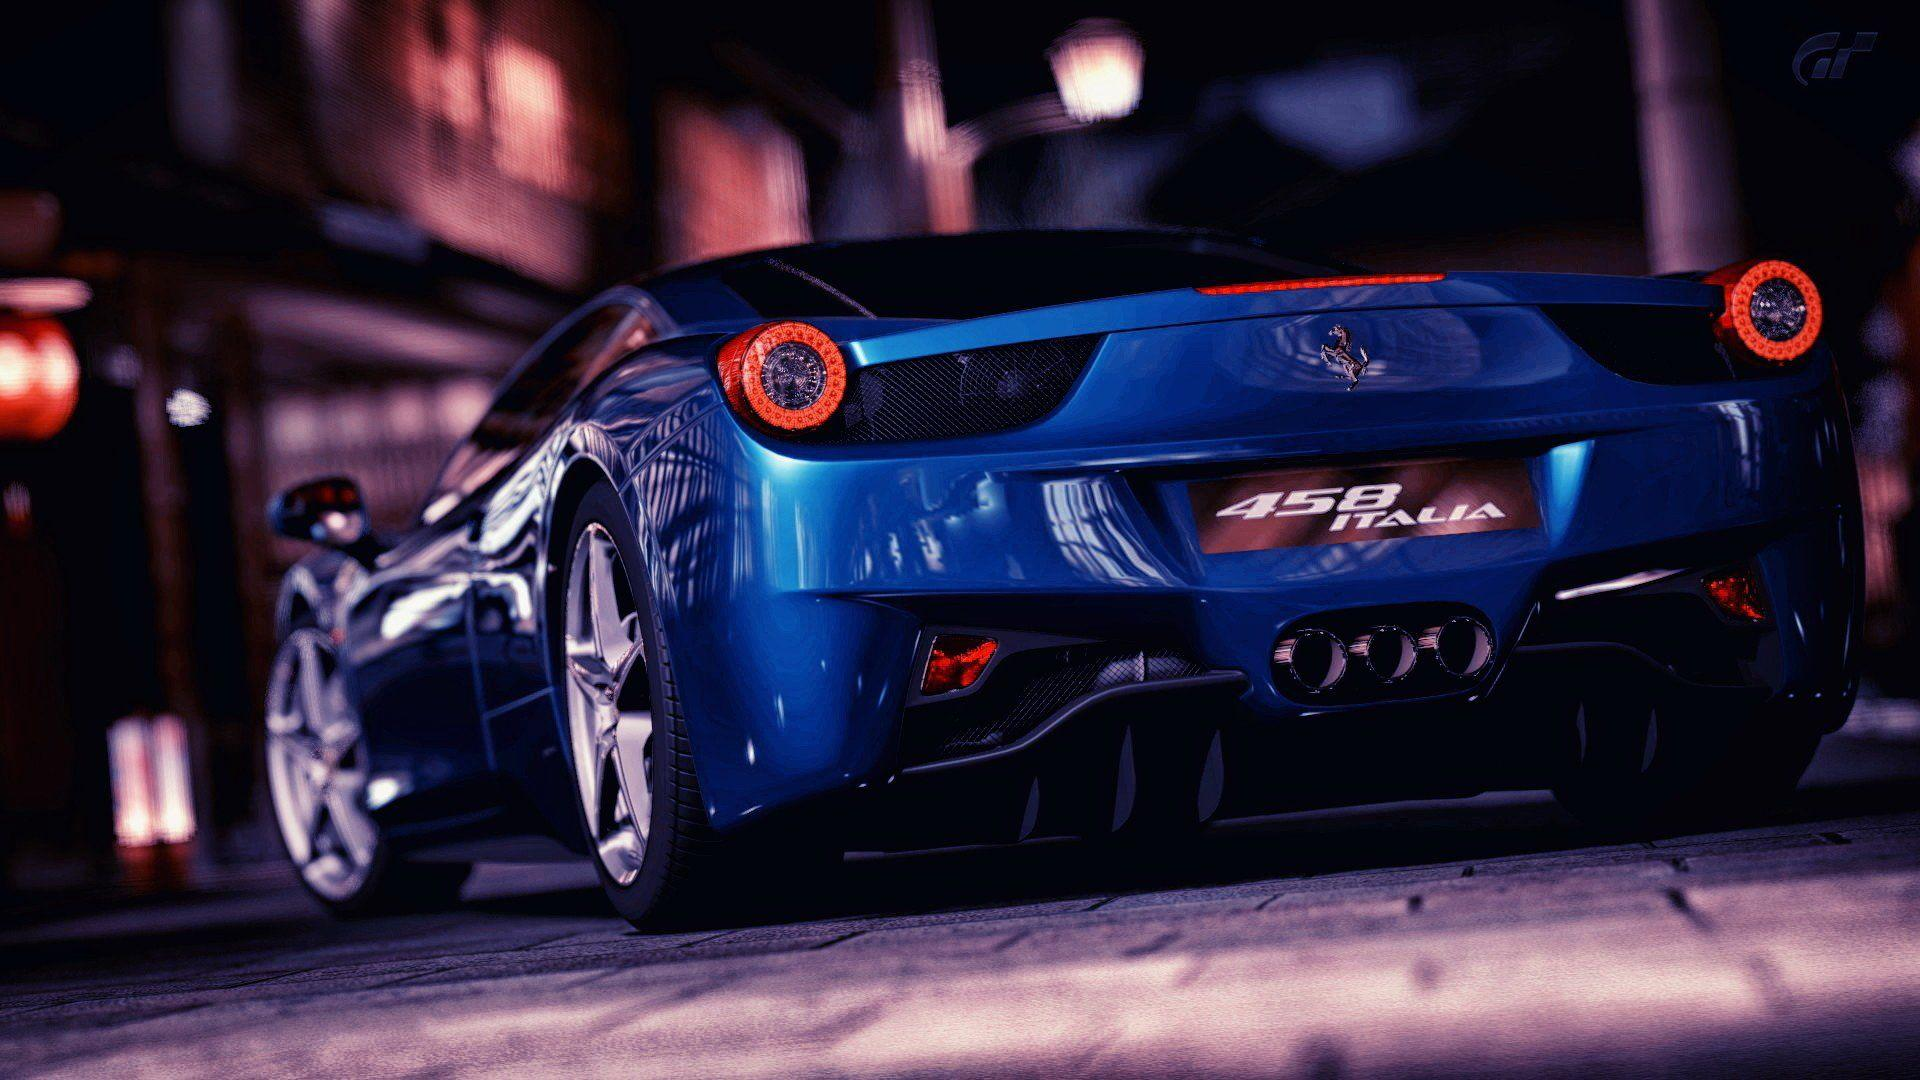 1126 Ferrari HD Wallpapers | Background Images - Wallpaper Abyss